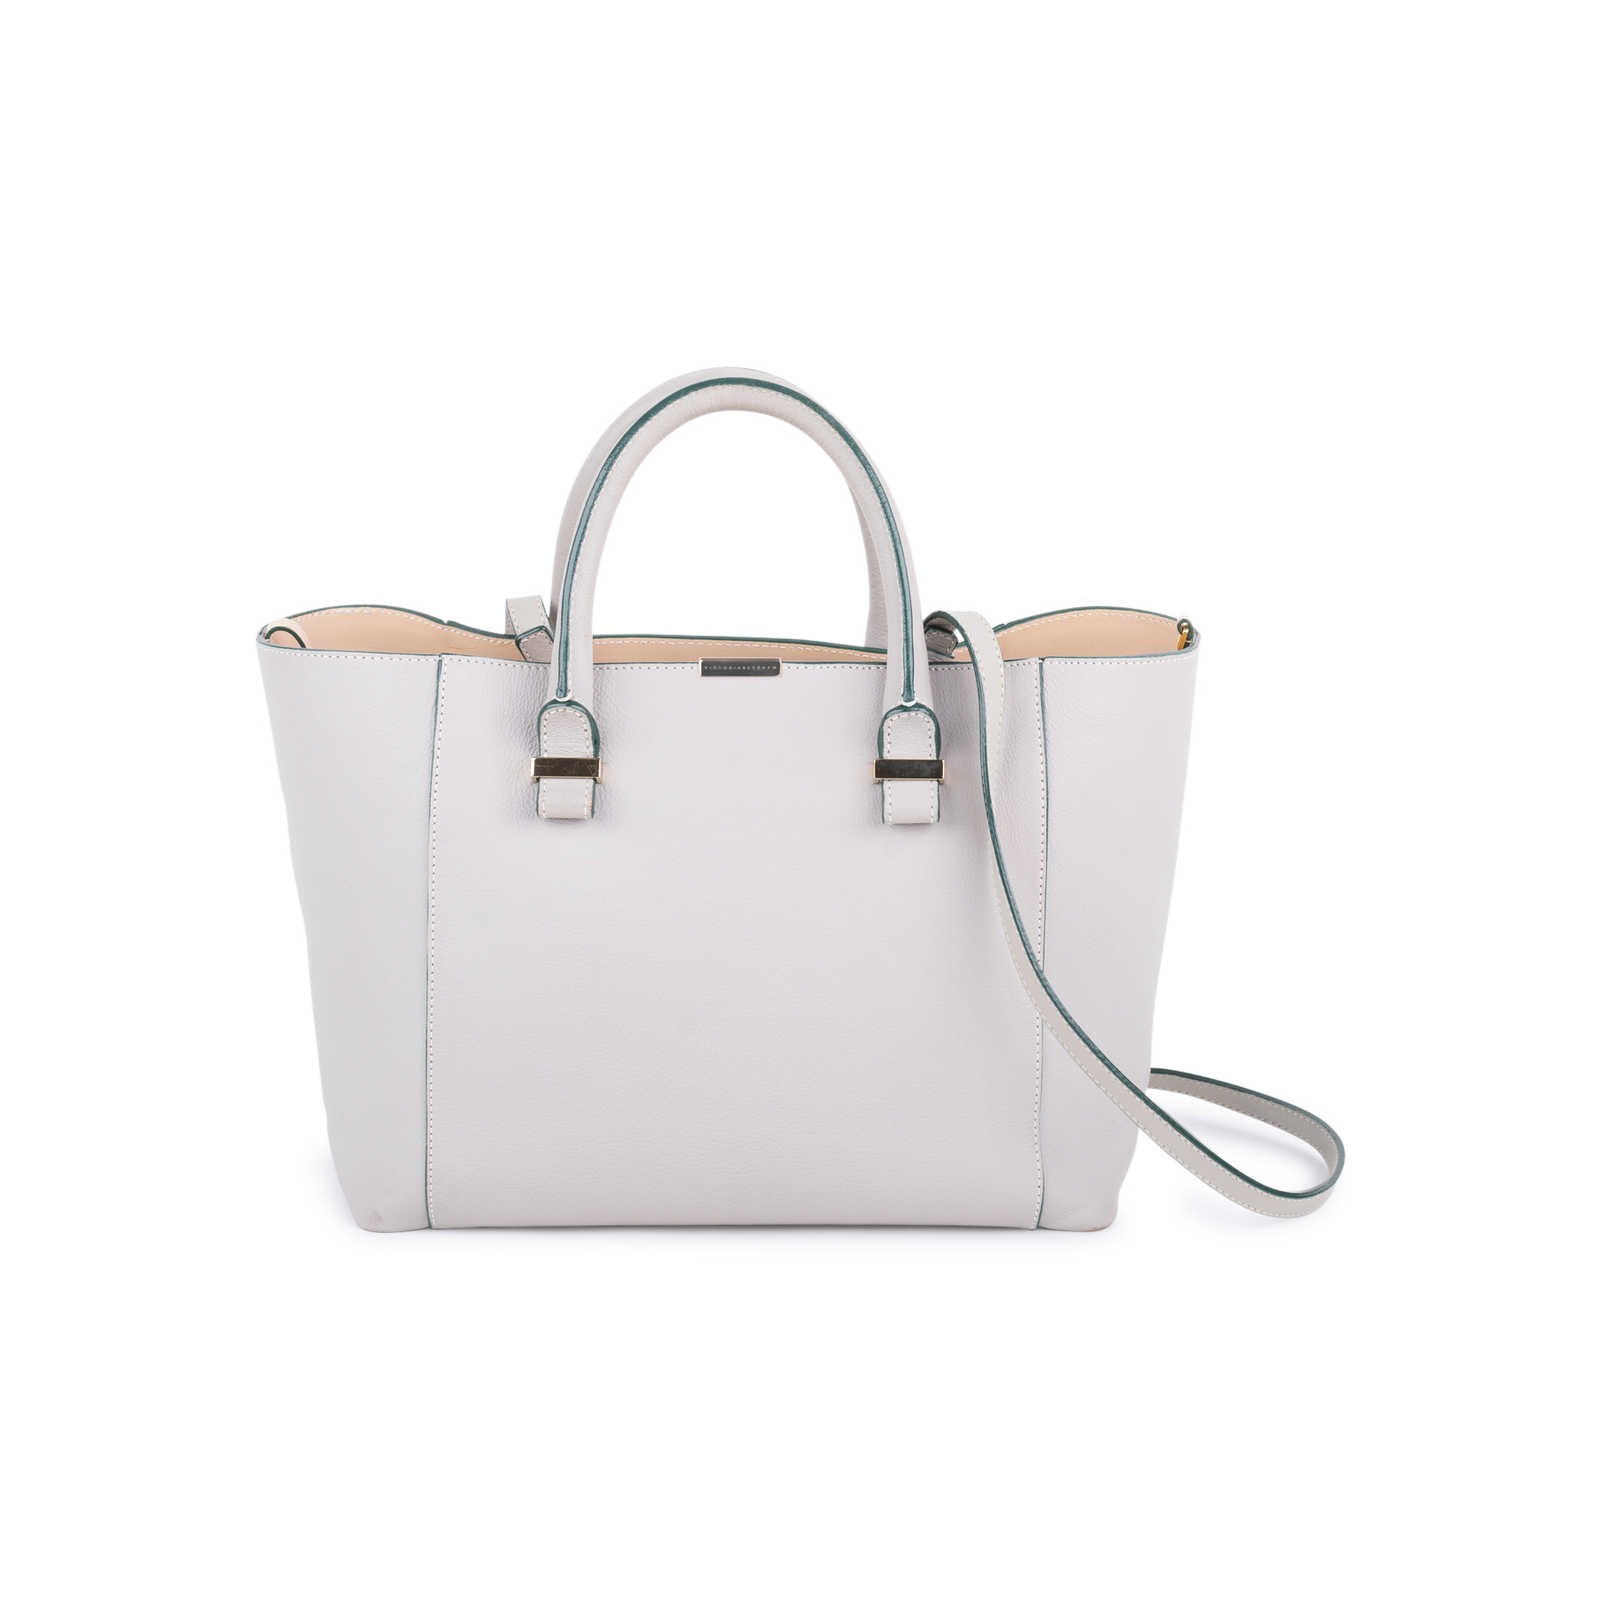 fe5c6e5dddcc Tap to expand · Authentic Second Hand Victoria Beckham Quincy Tote Bag  (PSS-097-00133) ...